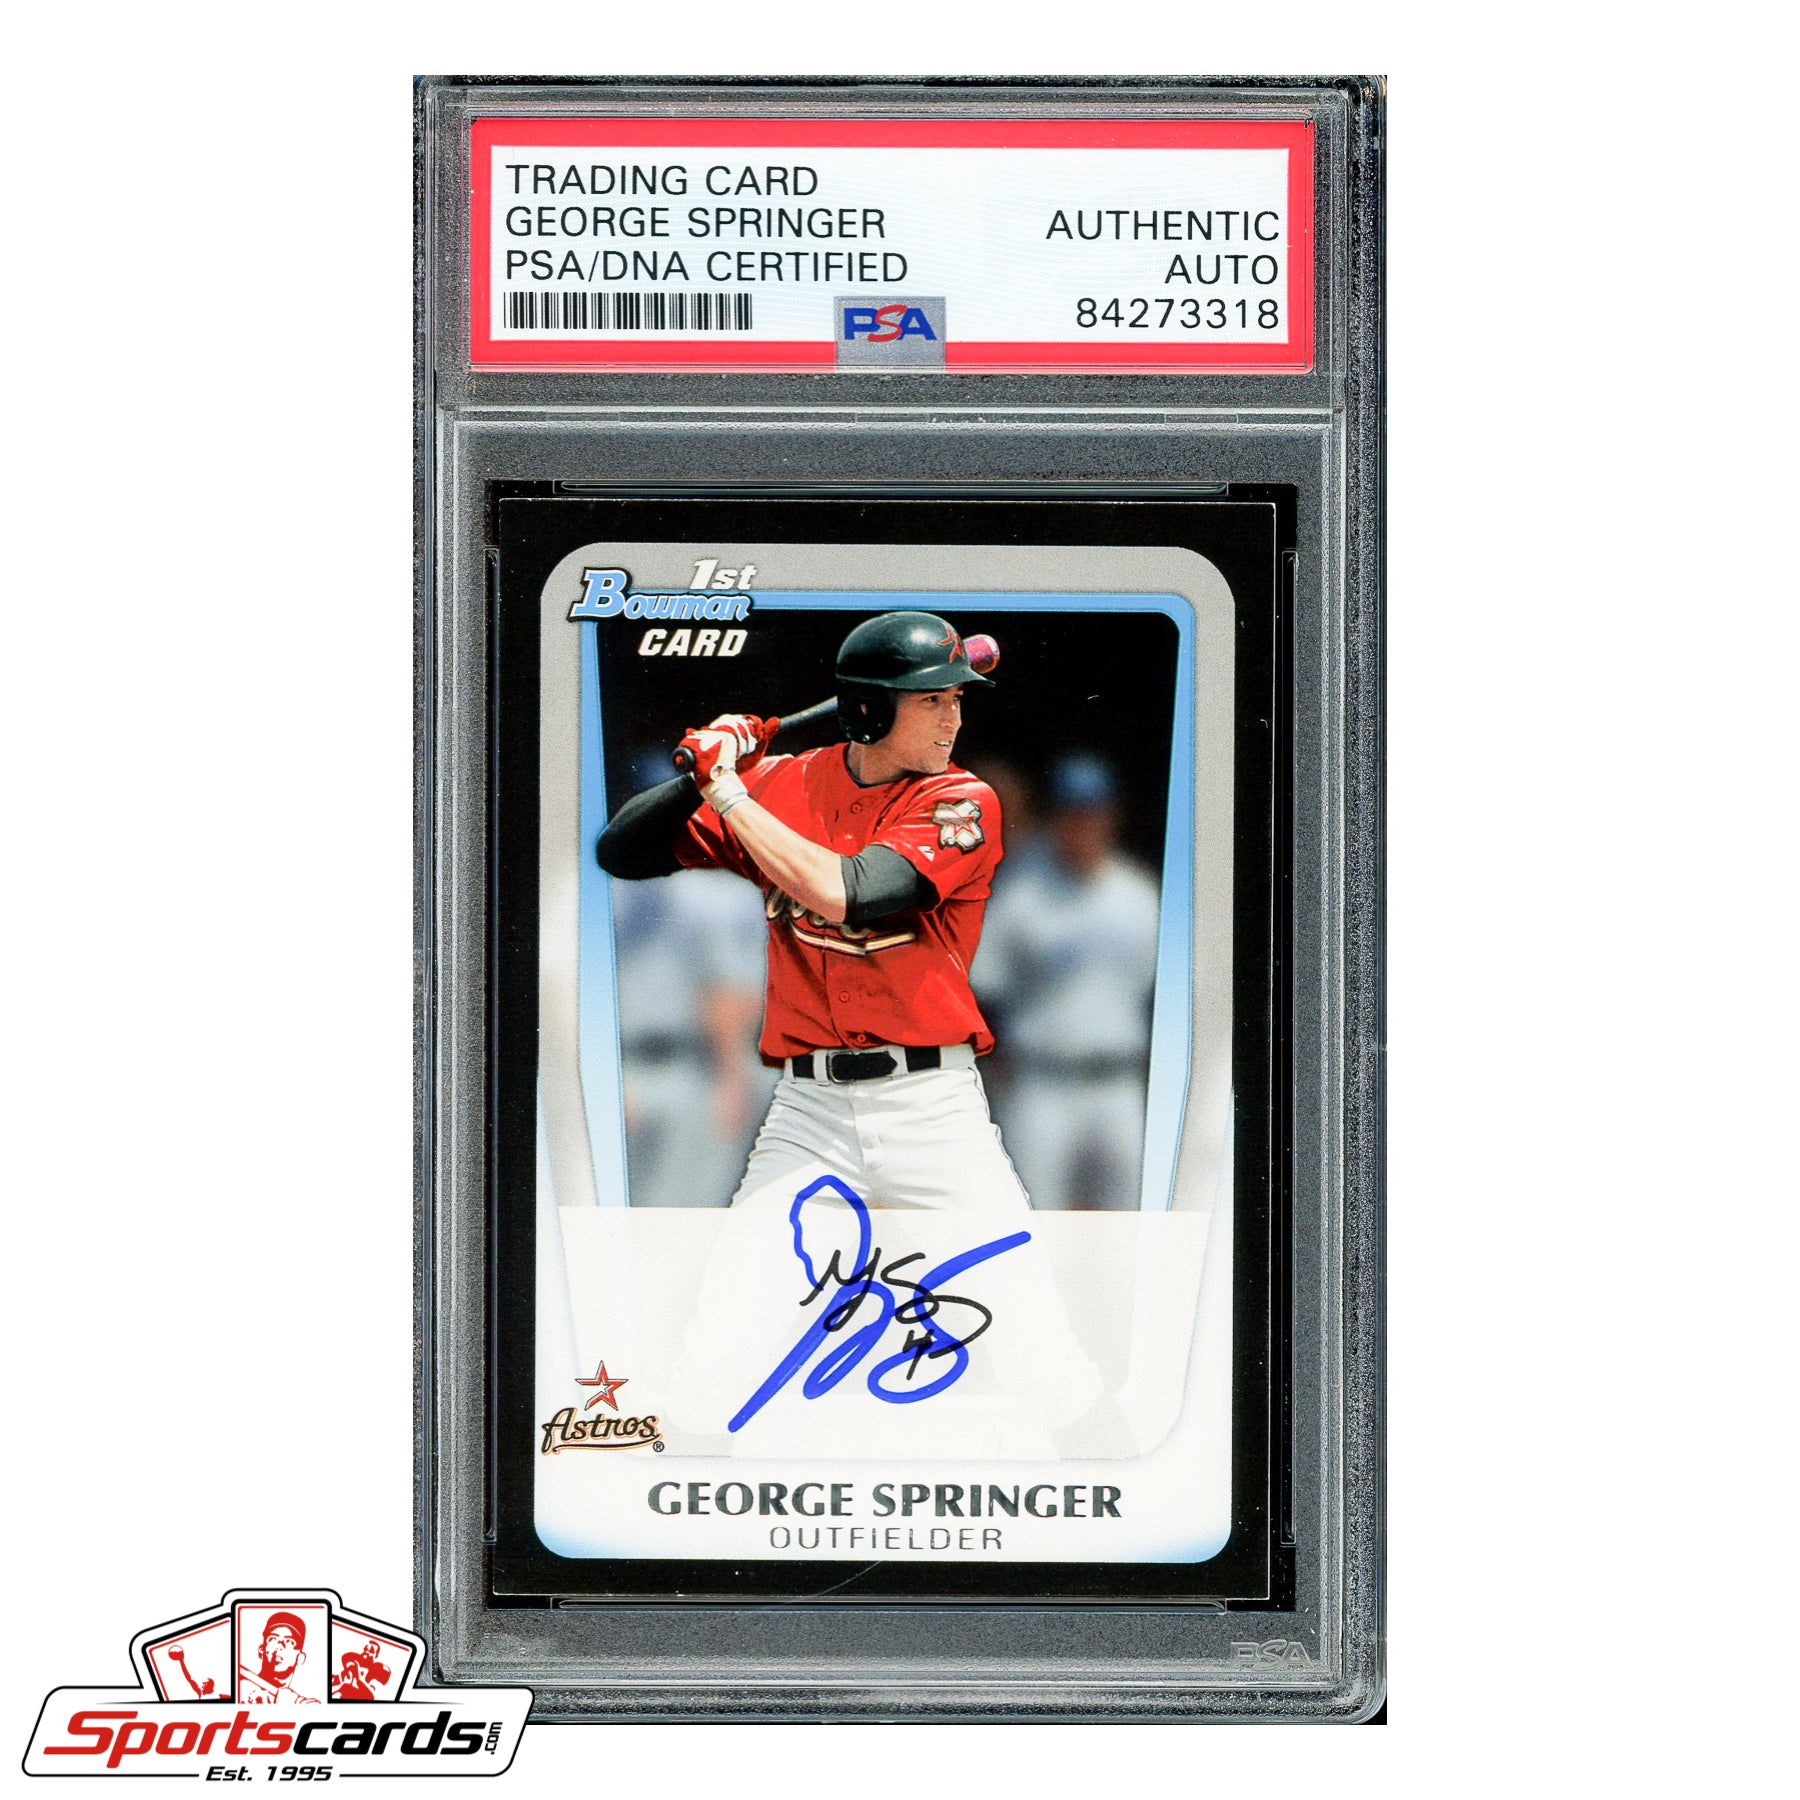 George Springer Signed Auto 2012 Bowman Draft RC #BDP81 PSA